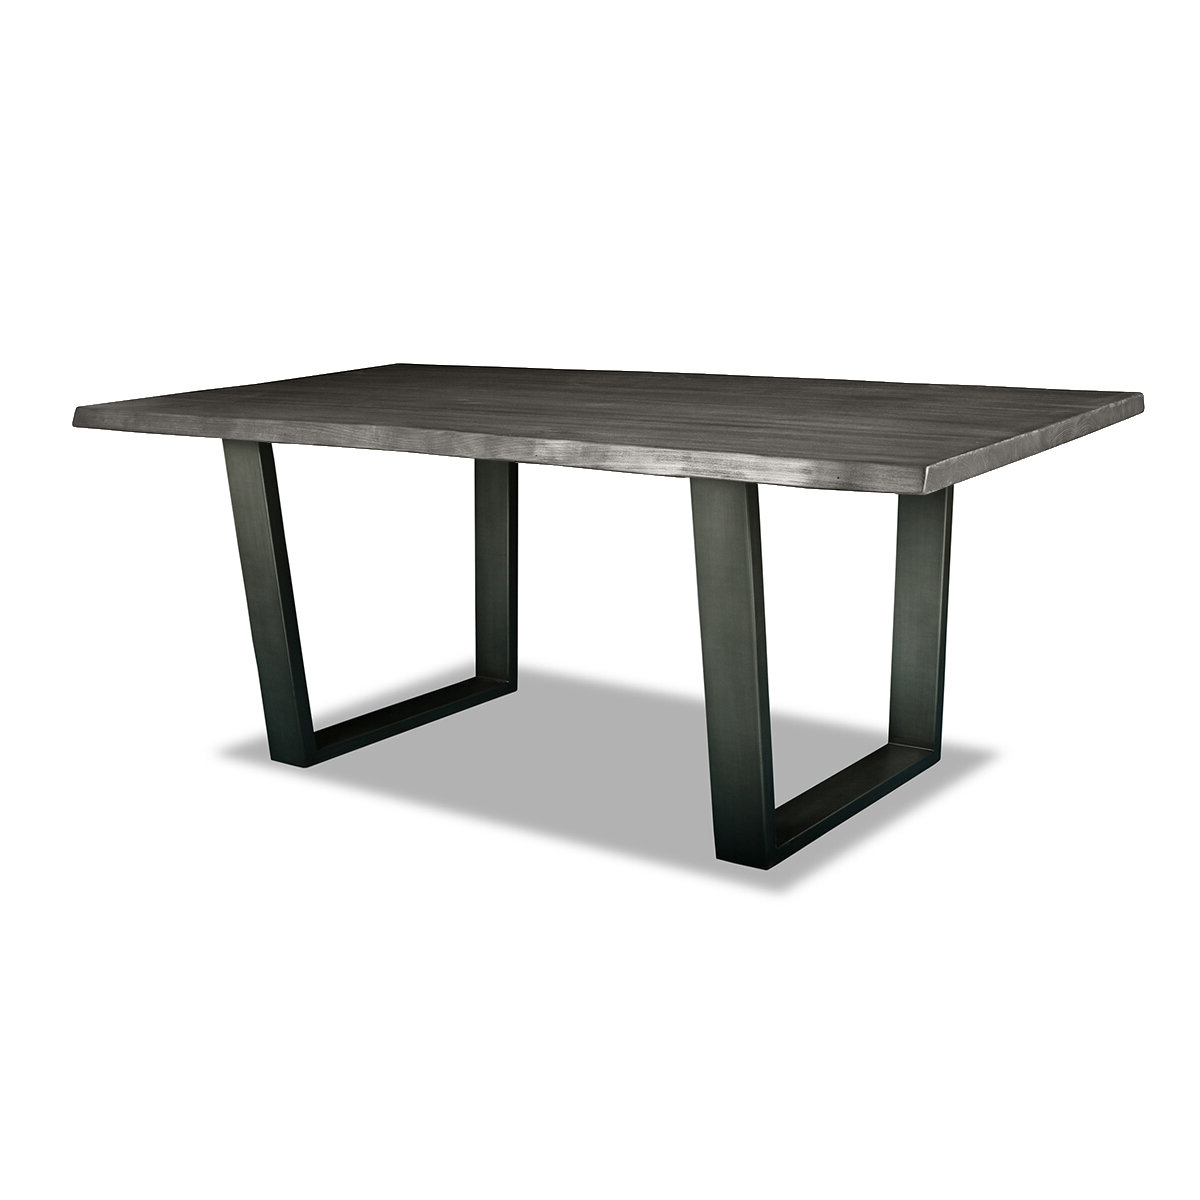 Preferred Acacia Dining Tables With Black Rocket Legs Inside Bullen Solid Wood Dining Table (View 22 of 30)